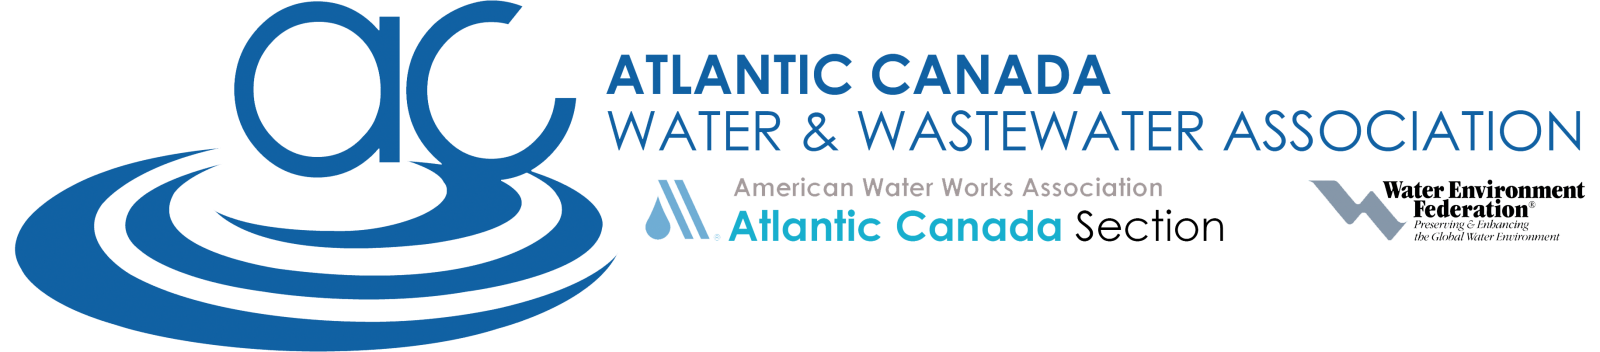 Atlantic Canada Water & Wastewater Association (Association)